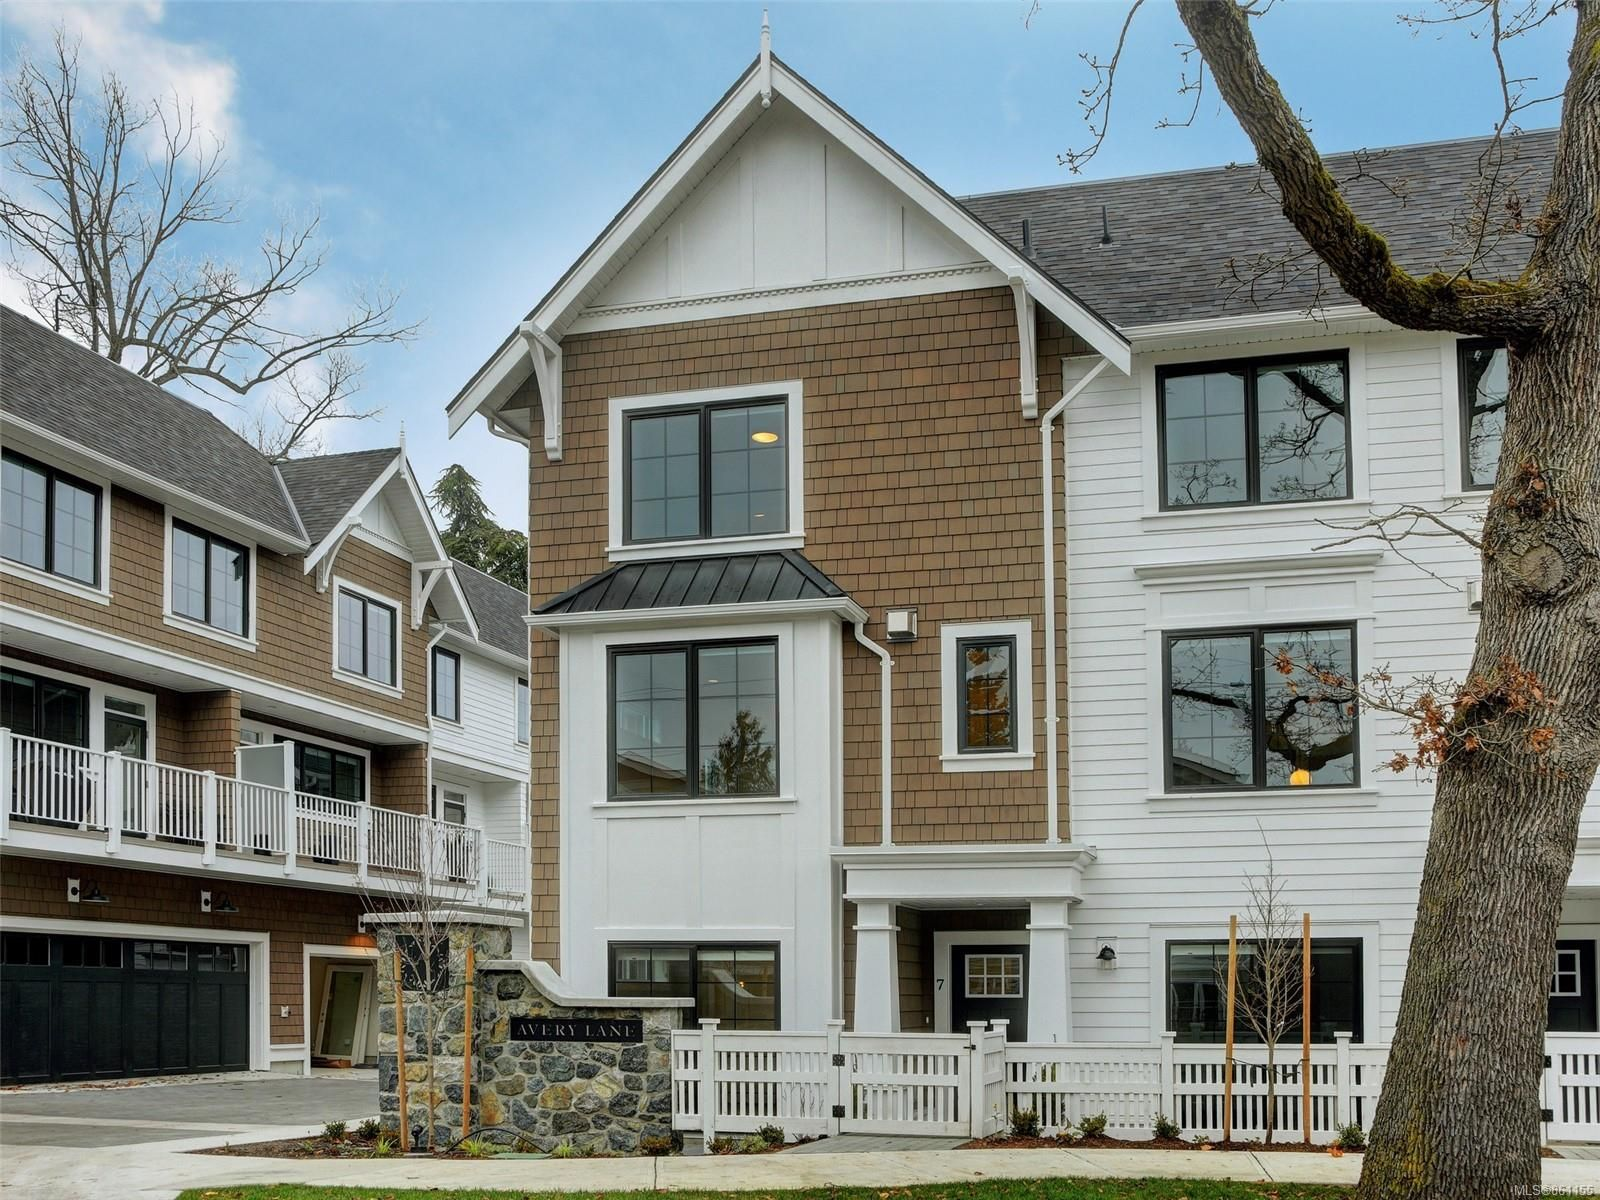 Main Photo: 7 1810 Kings Rd in : SE Camosun Row/Townhouse for sale (Saanich East)  : MLS®# 861155